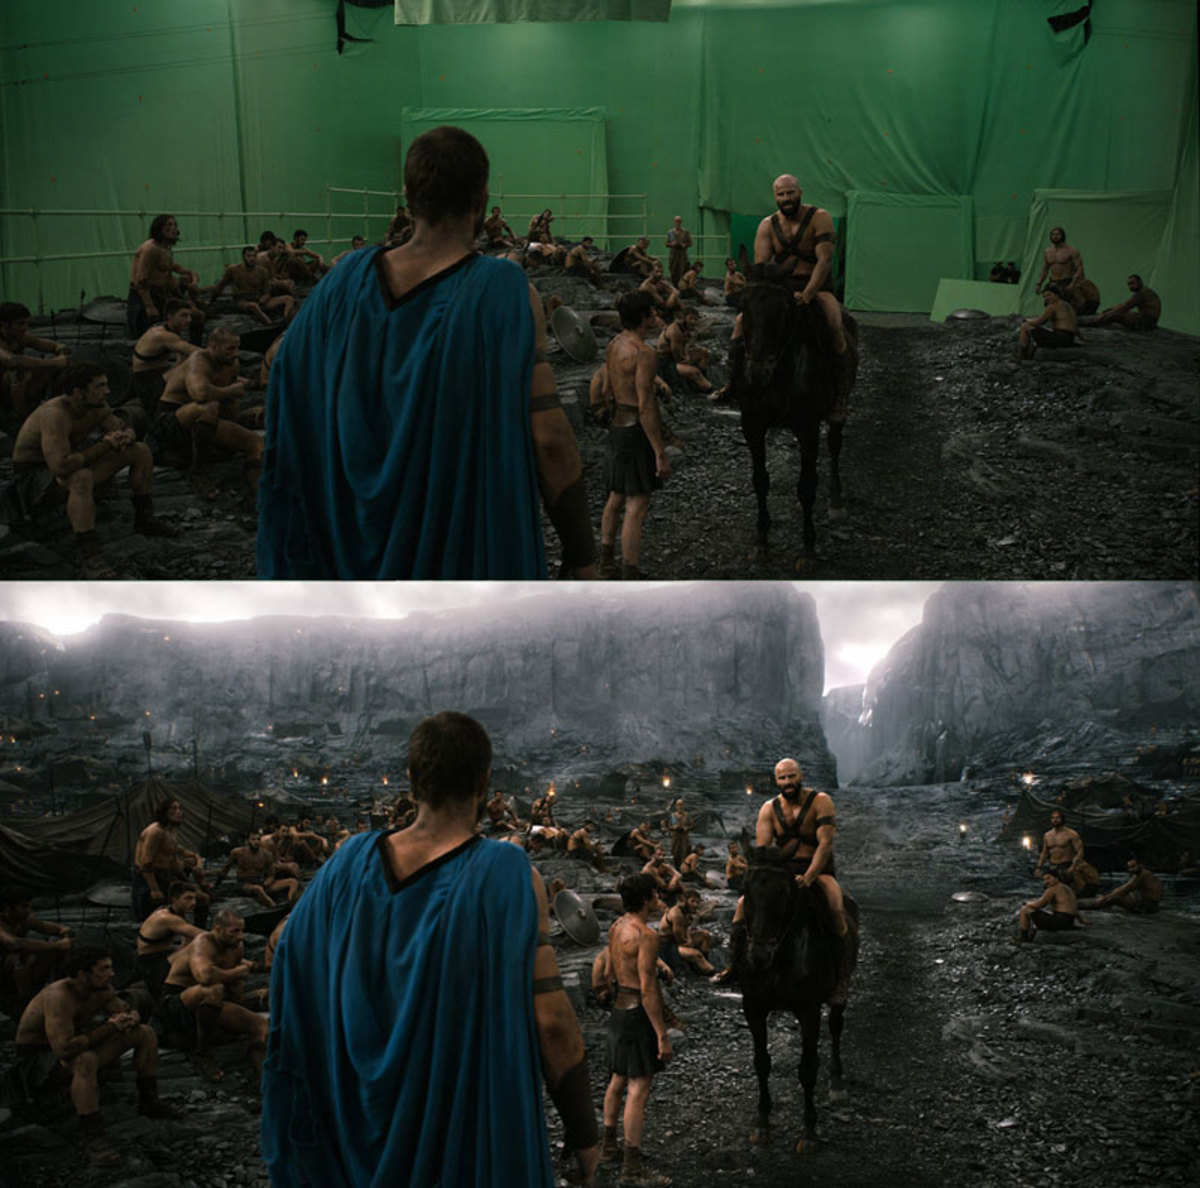 before-and-after-shots-that-demonstrate-the-power-of-visual-effects-25